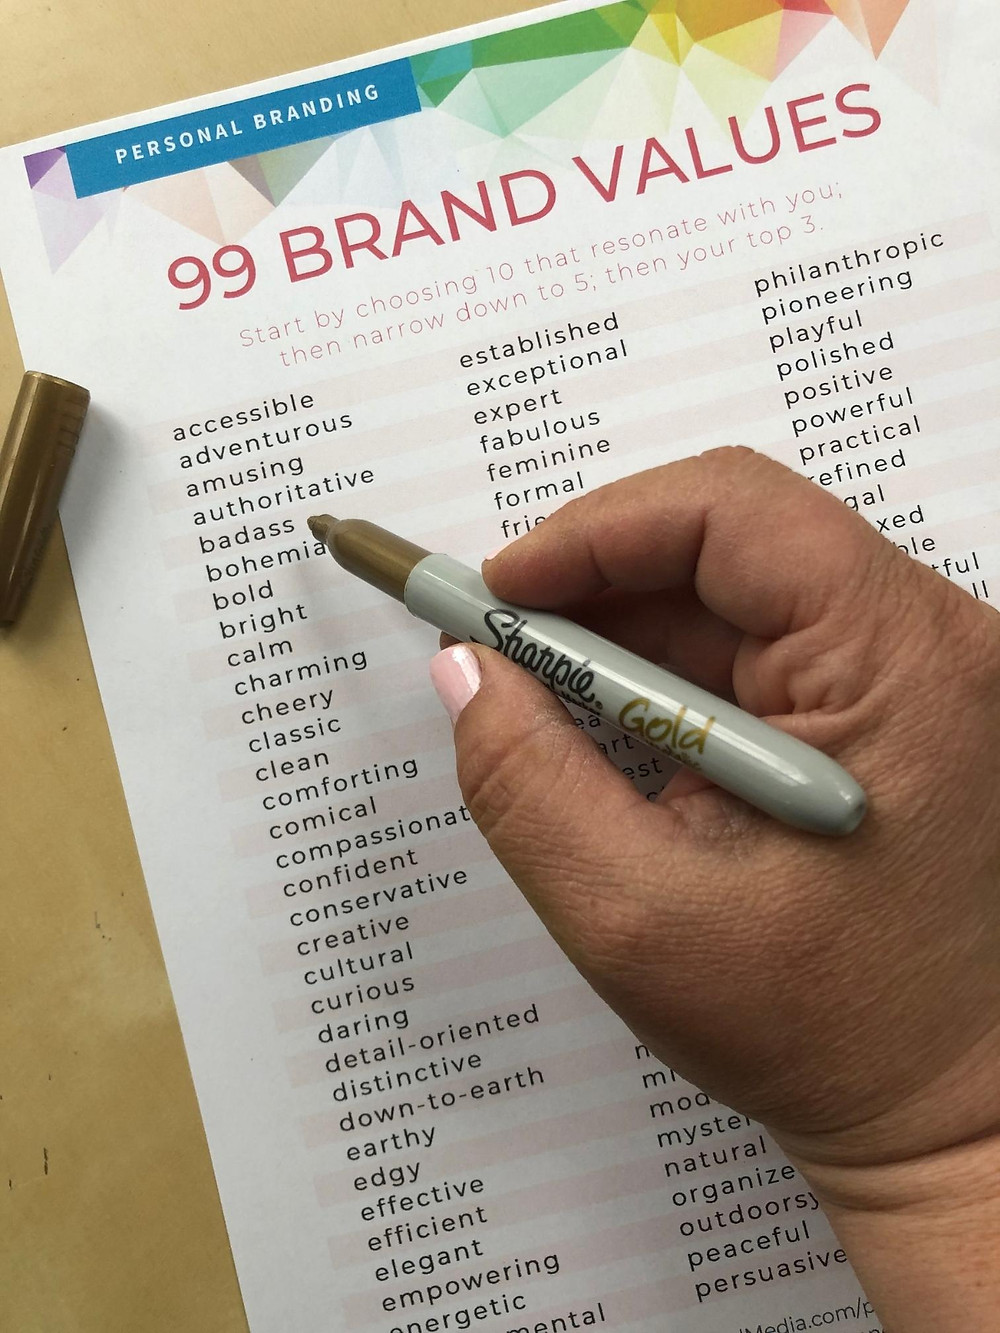 99 Brand Values Exercise by Val Lonergan free download PDF form for personal branding and developing a personal brand